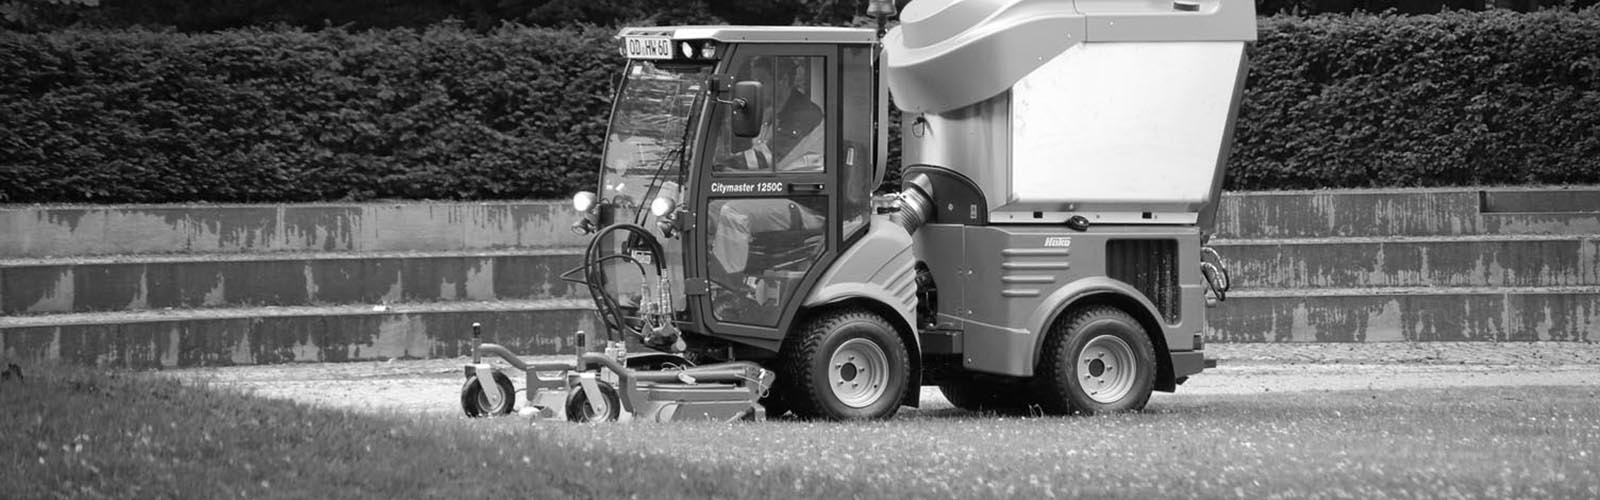 Citymaster 1250 Footpath Sweeper